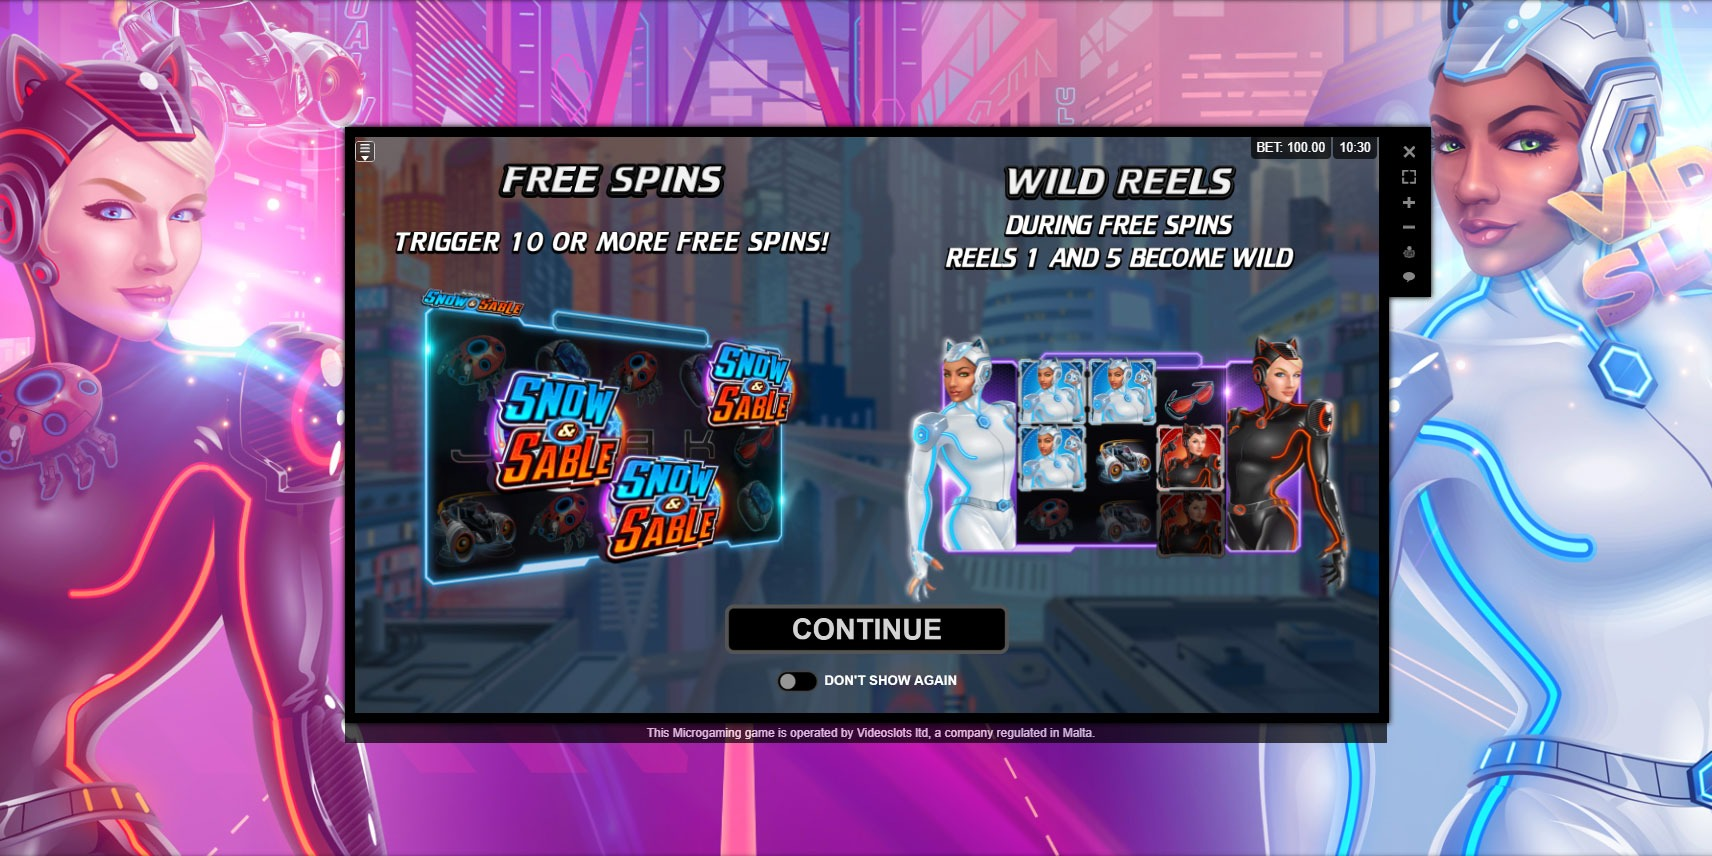 Play Action Ops Snow and Sable slot game